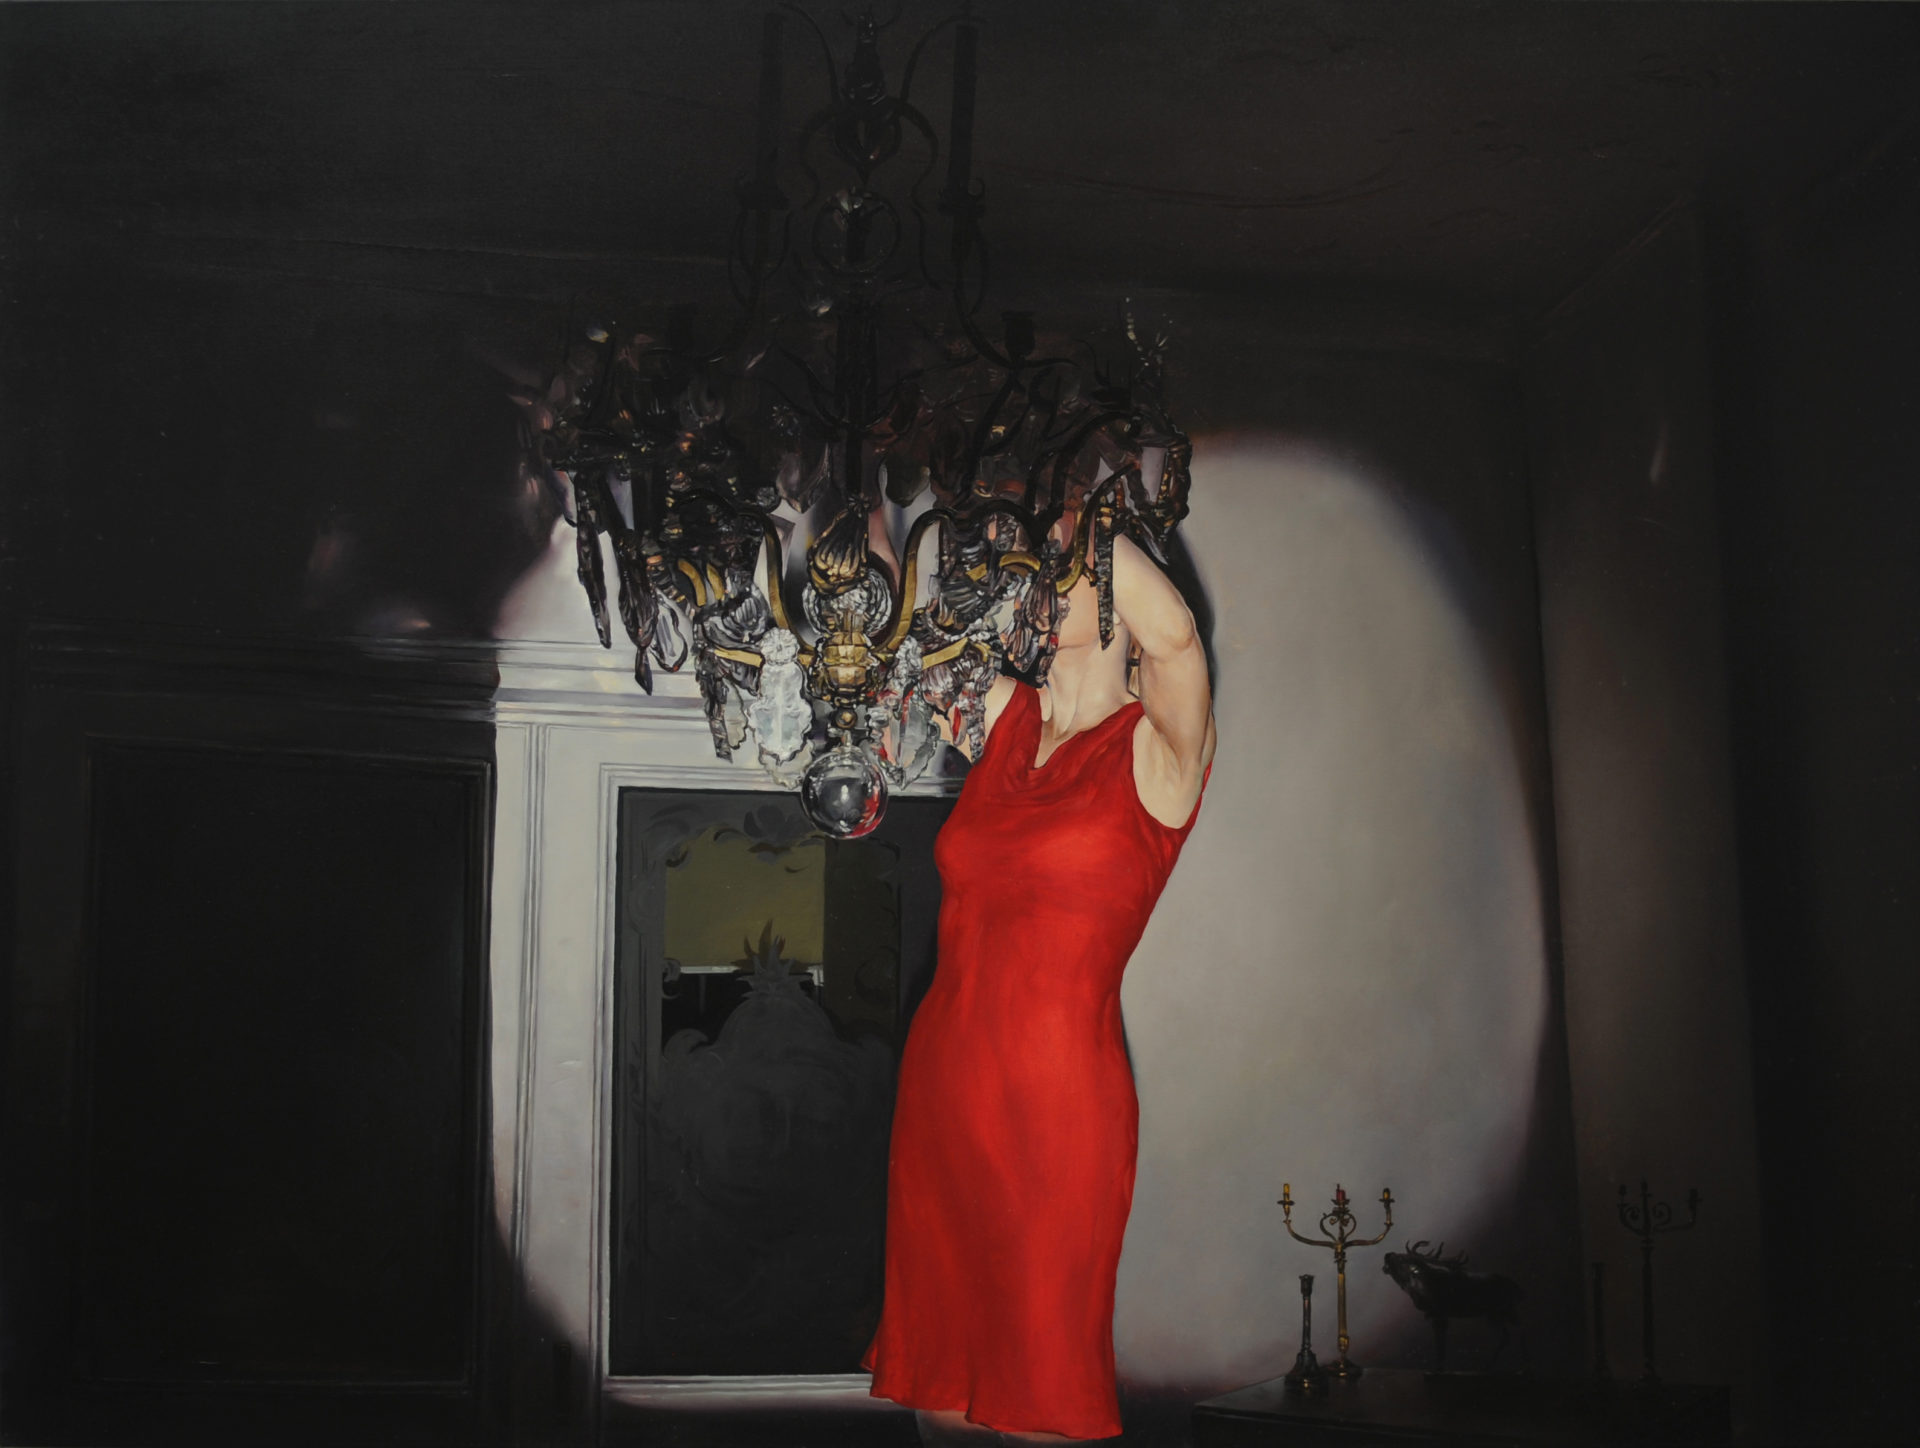 Red dress, Huile sur toile, 120 x 160 cm, Collection privée